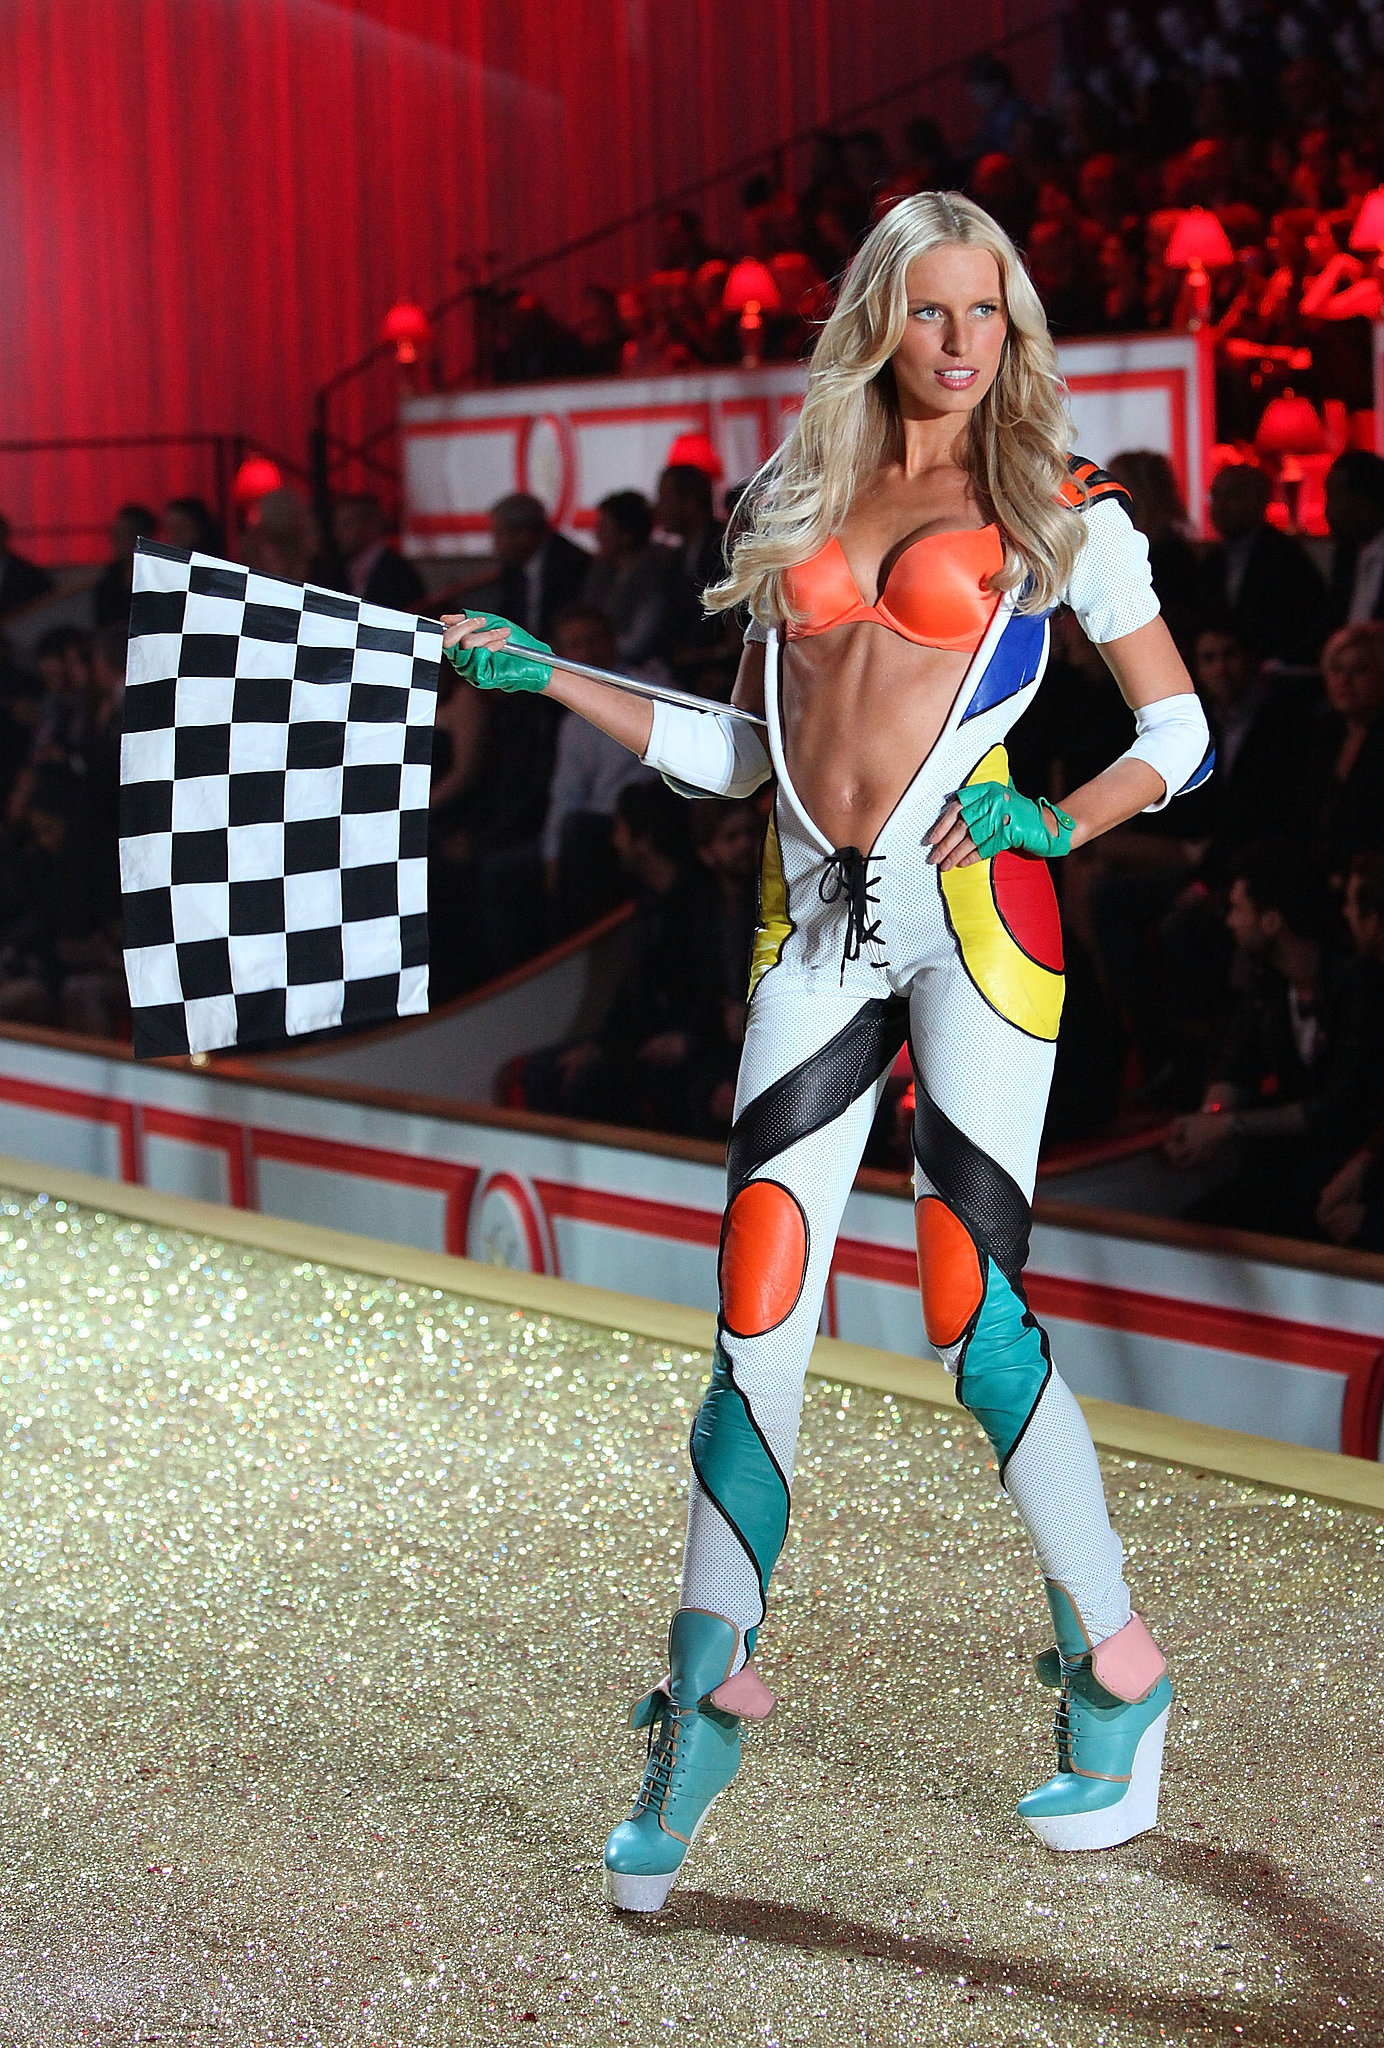 Karolina Kurkova sporty a sexy racing suit in 2010.